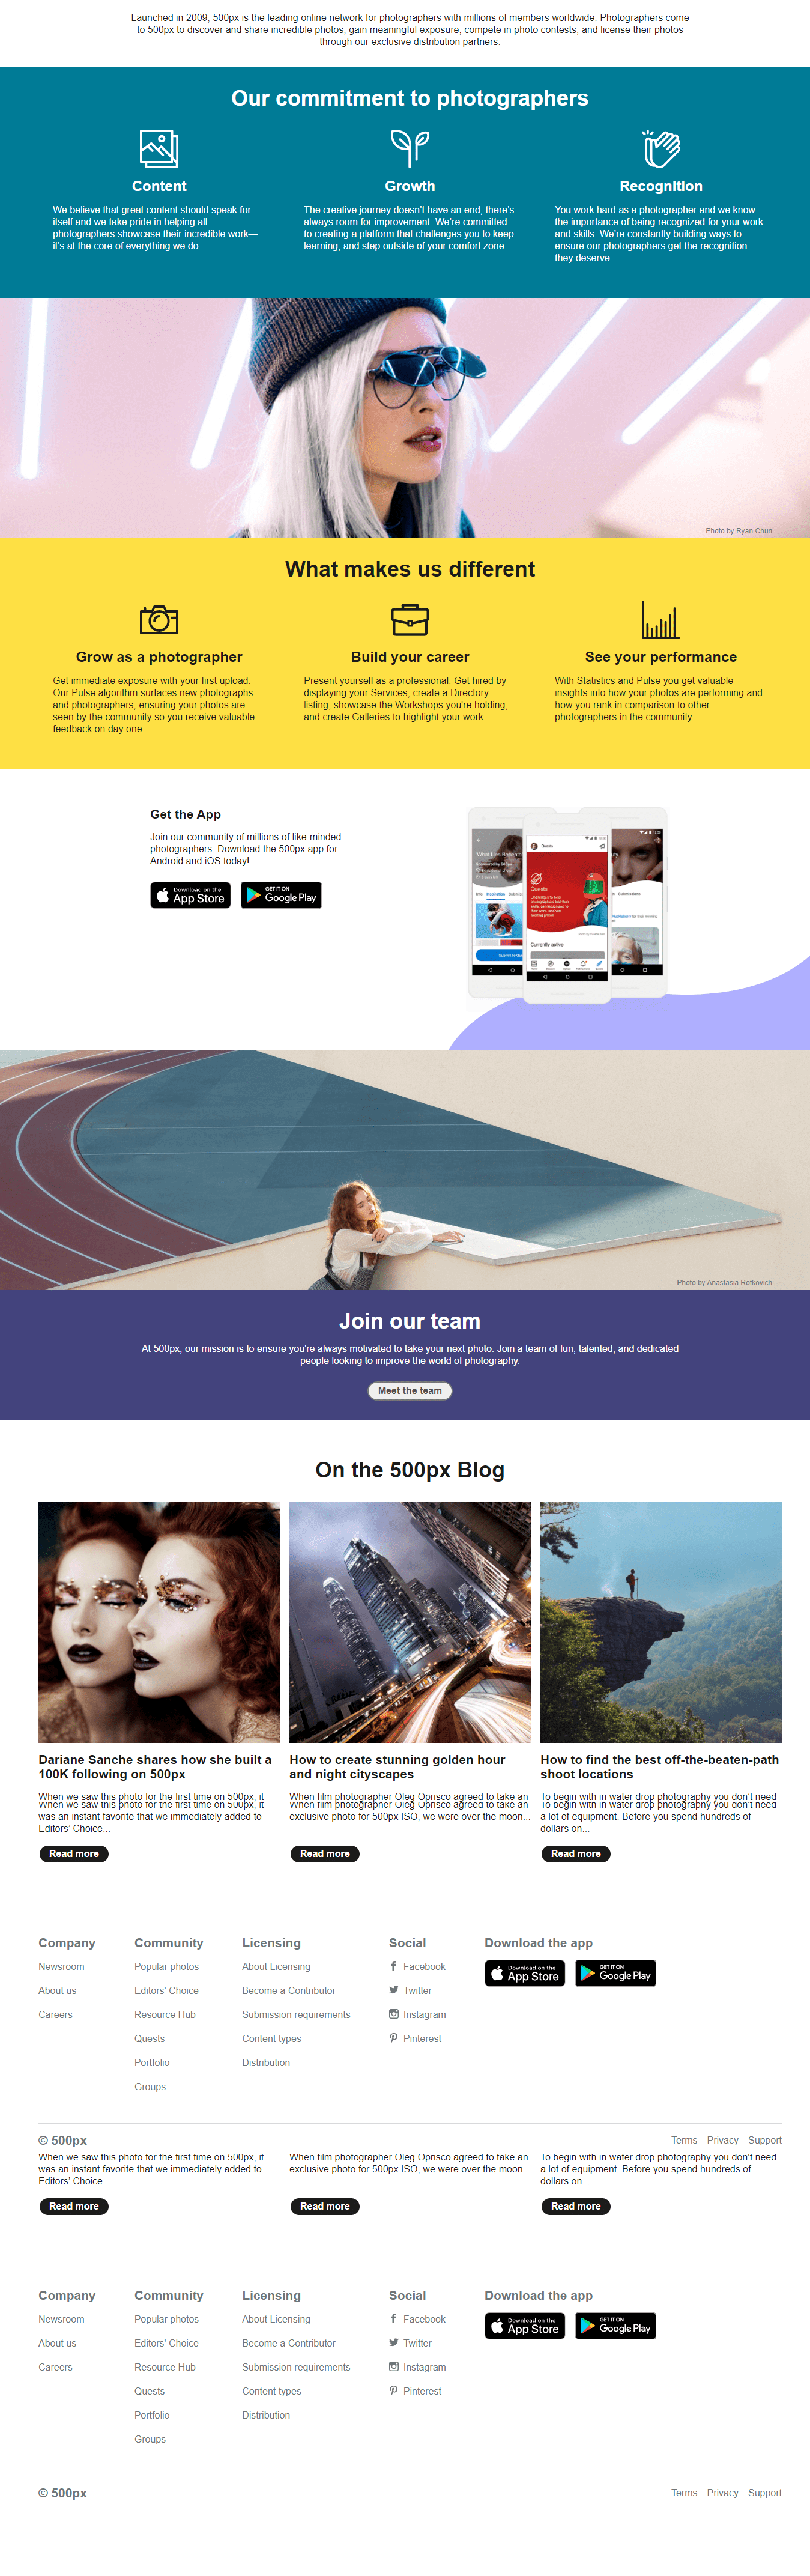 500px about us page